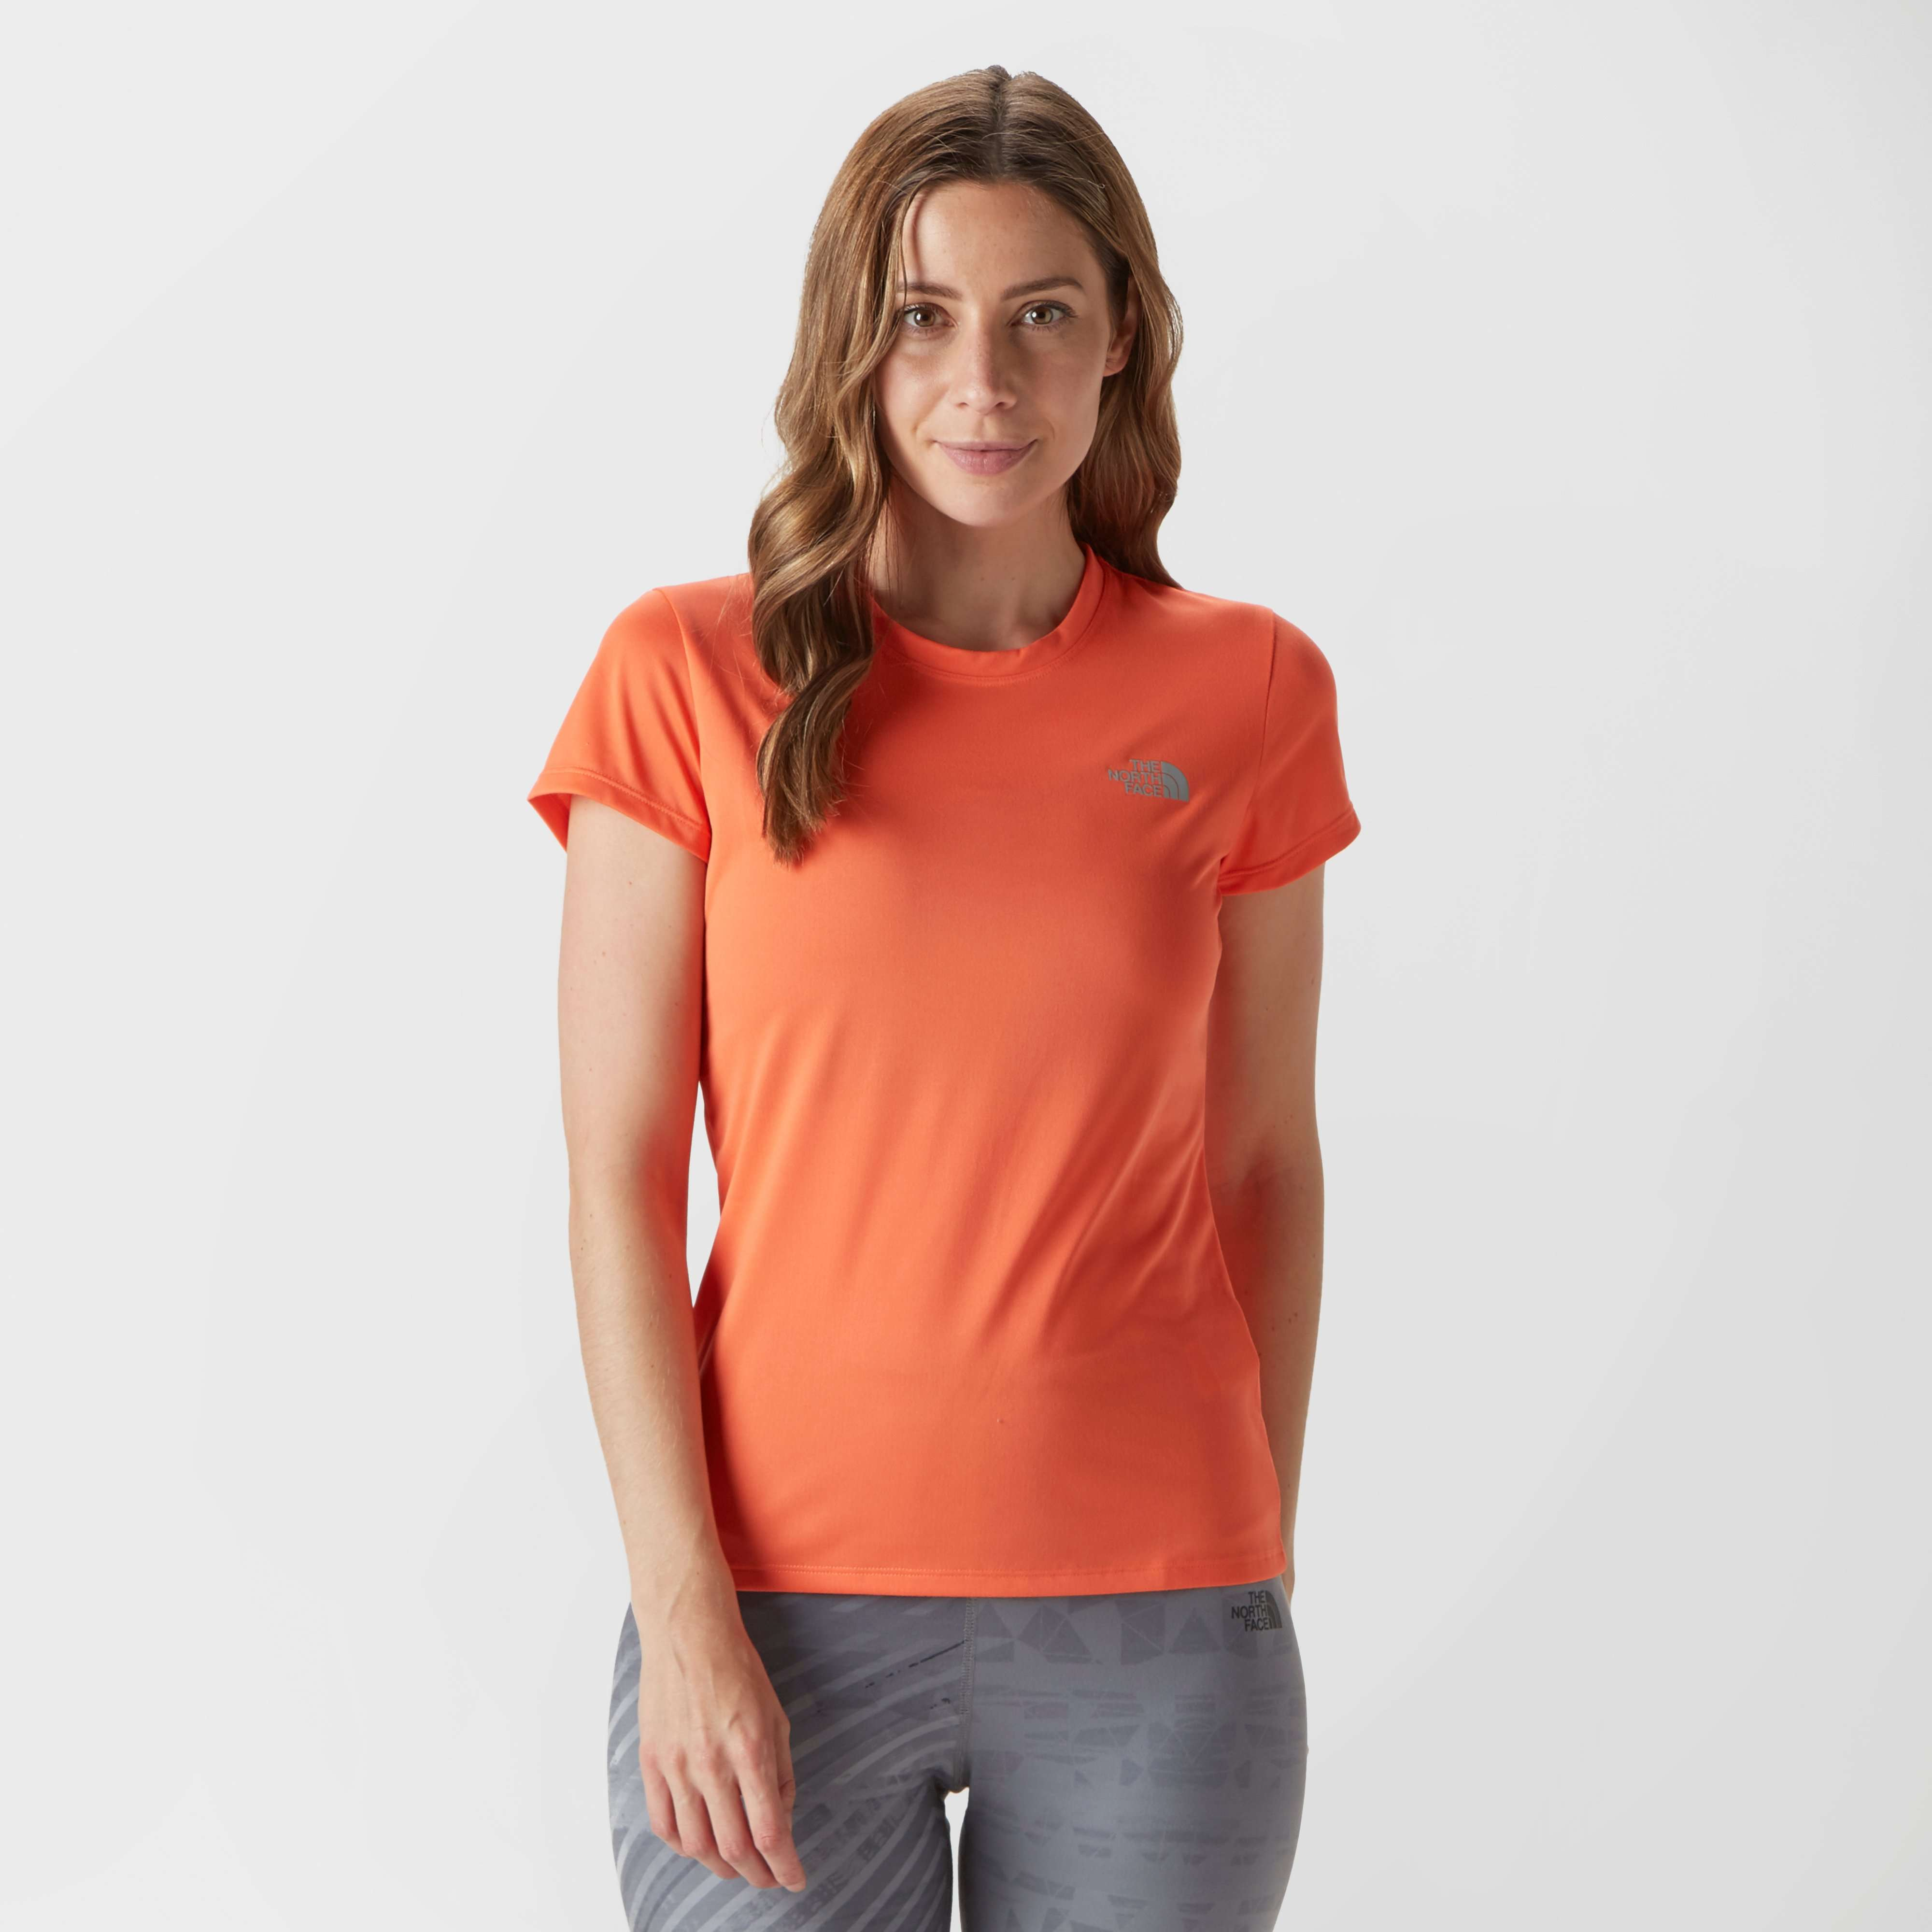 THE NORTH FACE Women's Mountain Athletics Reaxion Short Sleeve T-Shirt